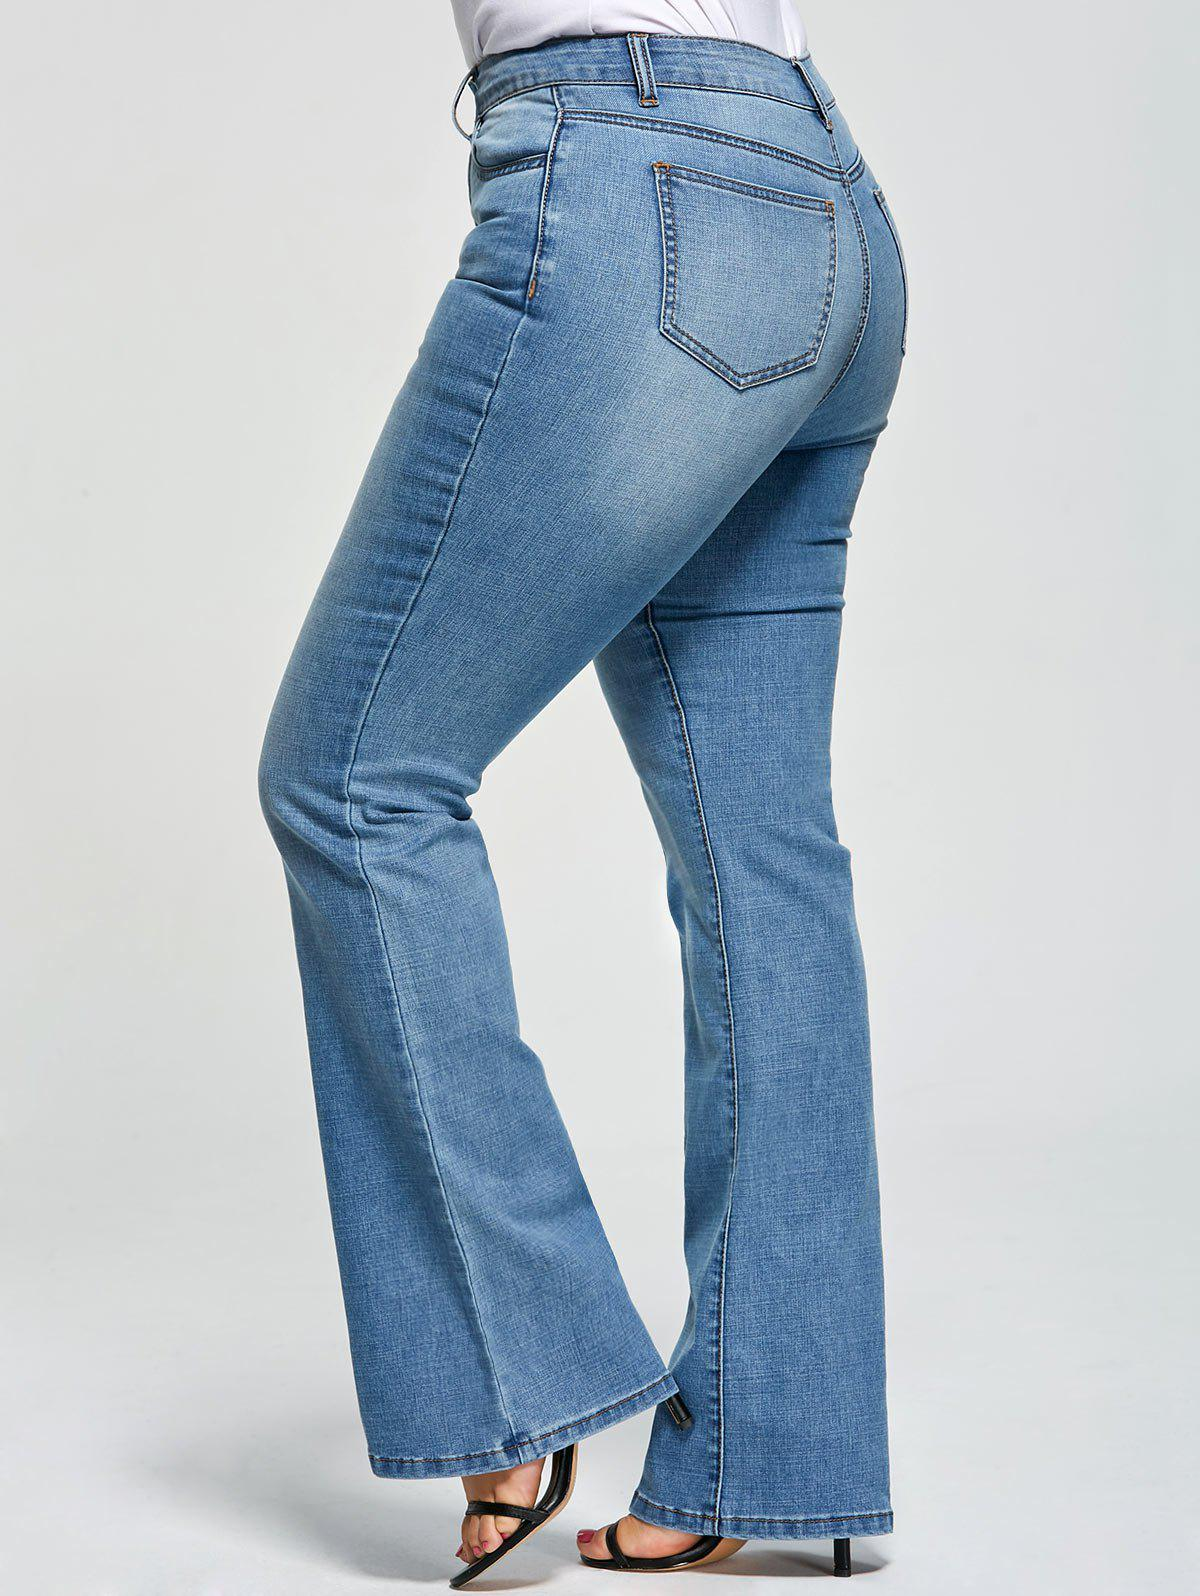 Plus Size Five Pockets Denim Flare JeansWOMEN<br><br>Size: XL; Color: DENIM BLUE; Style: Fashion; Length: Normal; Material: Polyester,Spandex; Fit Type: Regular; Waist Type: Mid; Closure Type: Zipper Fly; Pattern Type: Solid; Embellishment: Pockets; Pant Style: Flare Pants; Weight: 0.3900kg; Package Contents: 1 x Jeans;